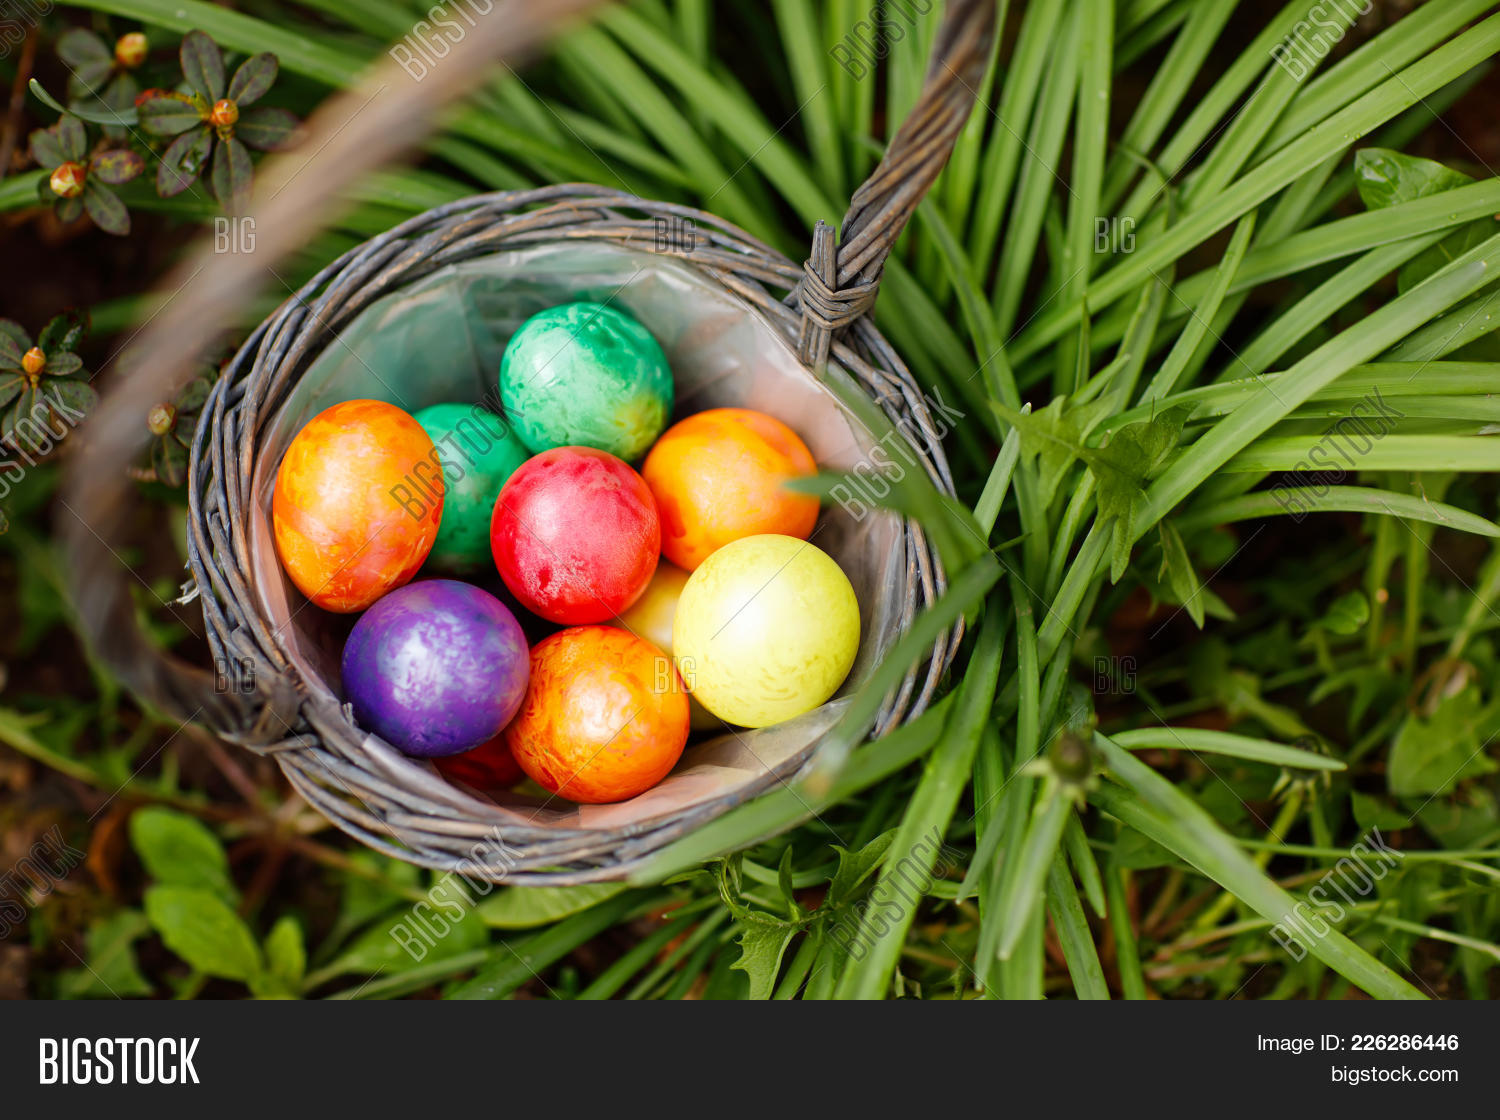 australia,basket,beautiful,catholic,celebration,christian,color,colored,colorful,concept,copy,creative,czech,daisy,dandelion,day,decorated,decoration,easter,egg,europe,festive,flora,flowers,german,grass,green,happy,holiday,lawn,nice,outdoor,paint,plant,present,rejoice,religion,season,seasonal,small,space,spring,sunny,surprise,symbol,tradition,traditional,usa